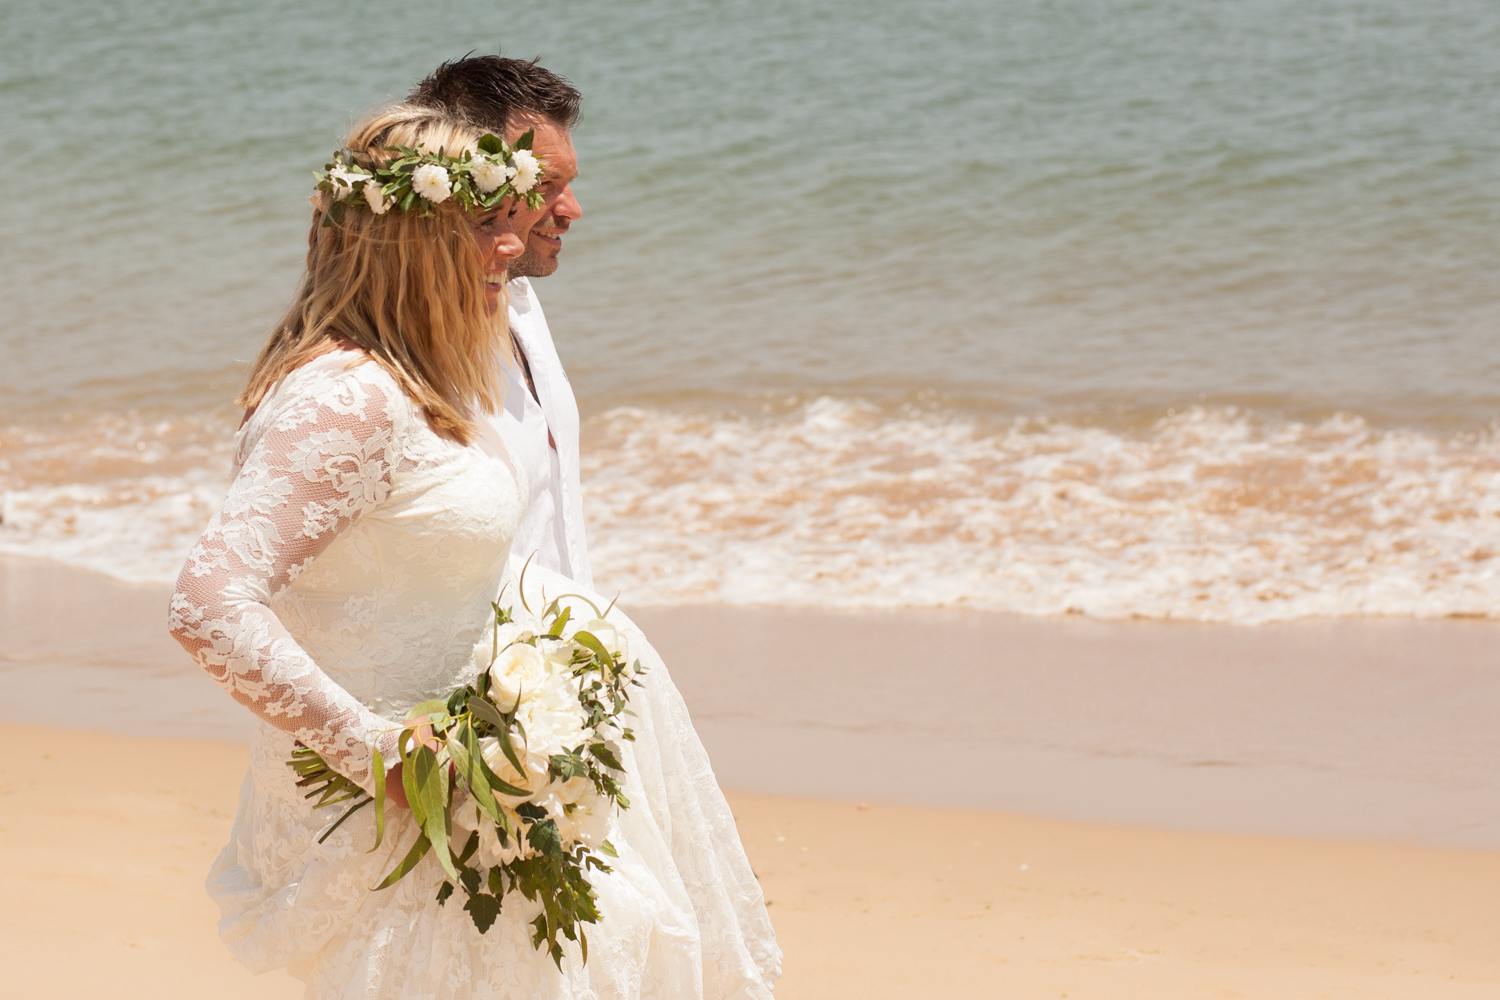 WEDDING_PORTUGAL_NOSOLOAGUA_CAVE_PICTORIAL_BERWICK-9545.jpg